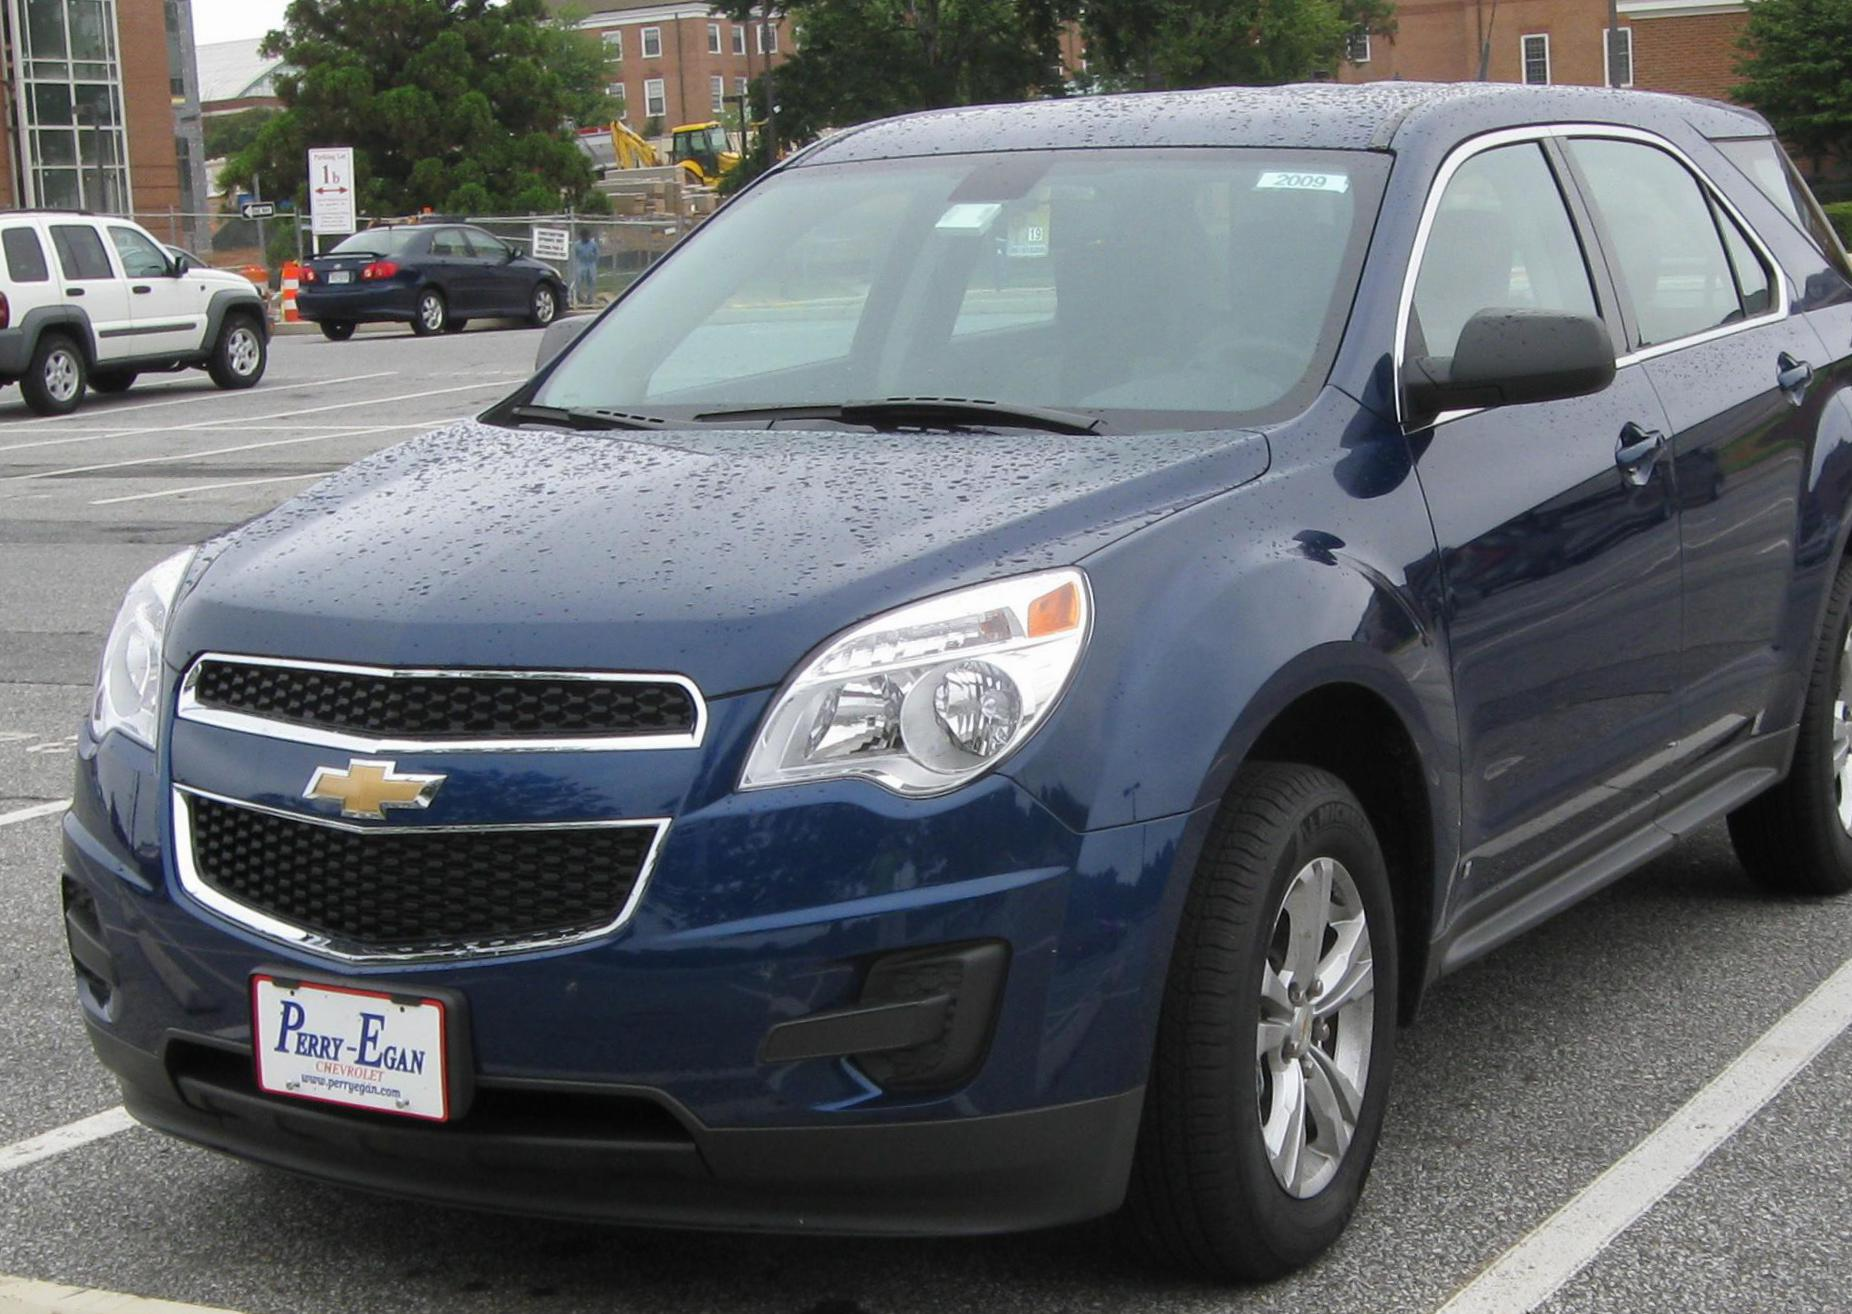 Equinox Chevrolet sale 2003